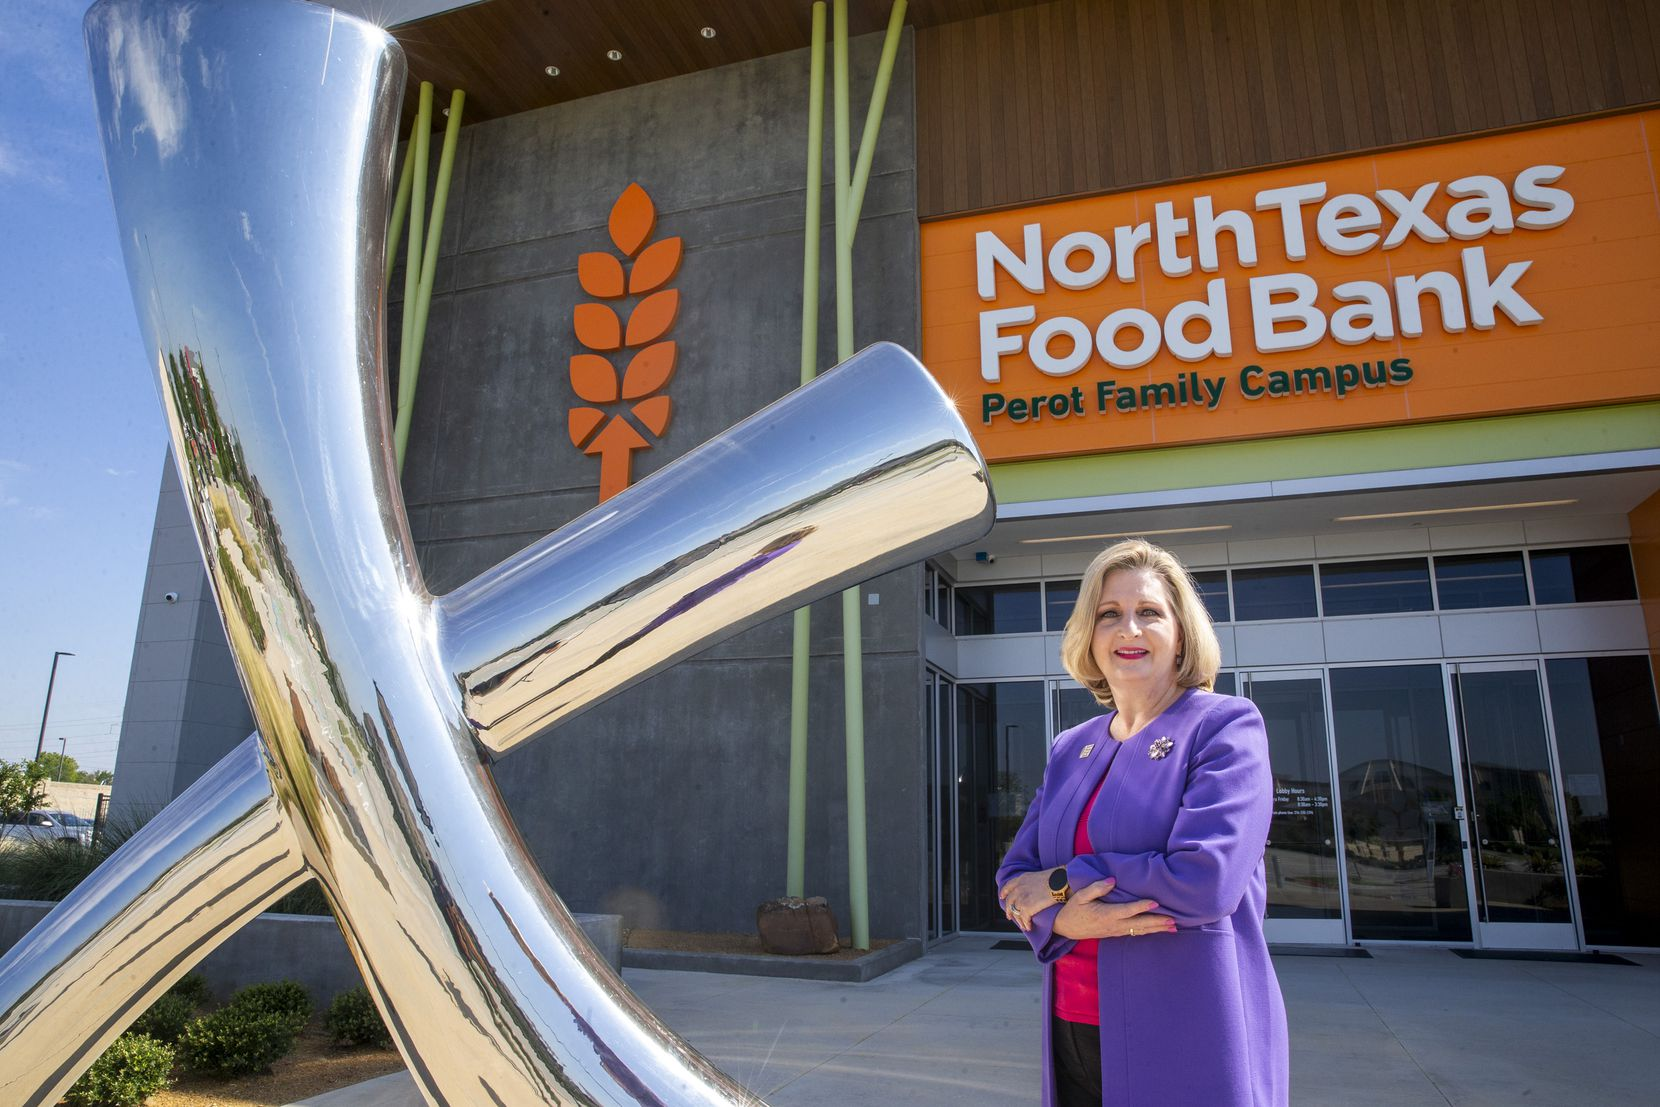 CEO Trisha Cunningham is shown at the North Texas Food Bank Perot Family Campus in Plano in June. She took on the role in July 2017 after a 30-year career at Texas Instruments.